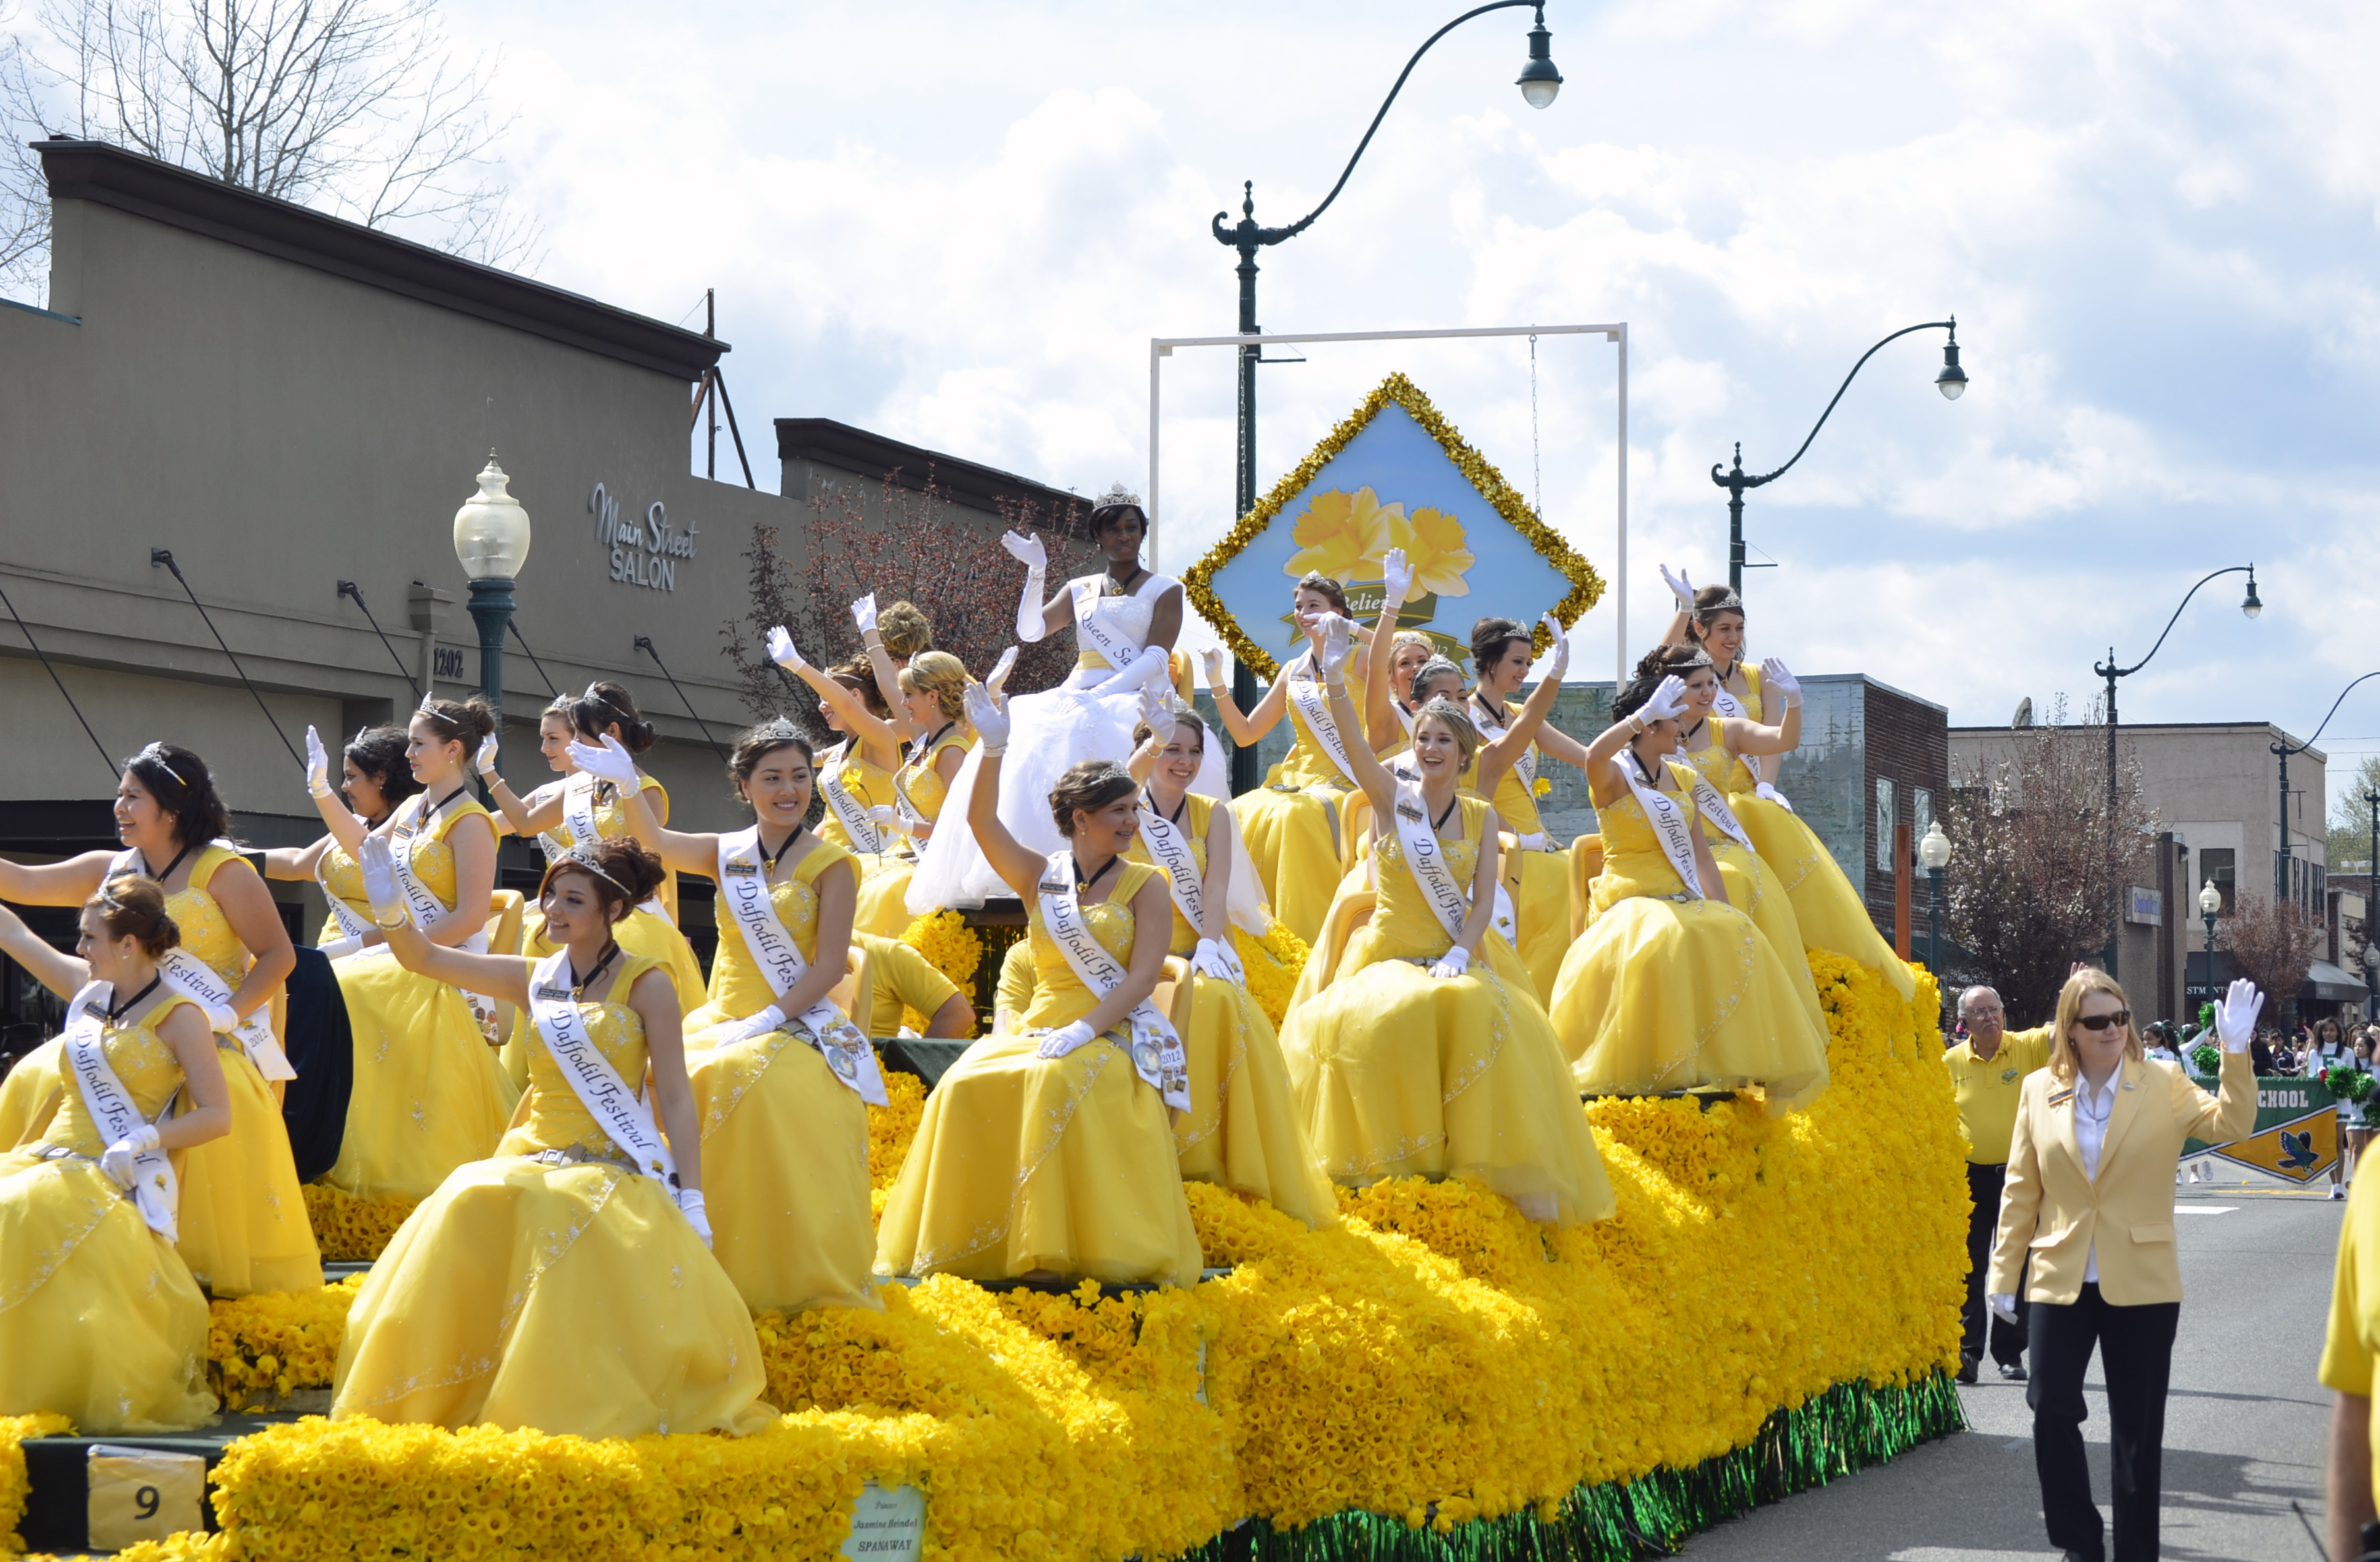 Sumner Daffodil Parade - LaRose (7):  The Queen and her Royal Court ride on the Queen's float.  The Daffodil princesses are official Ambassadors of the Festival. The twenty four young women participating in the Royalty program have each been selected by their schools and communities to represent the Daffodil Festival and Pierce County as the Festival travels throughout the Pacific Northwest. Mindi LaRose/Special to the Herald